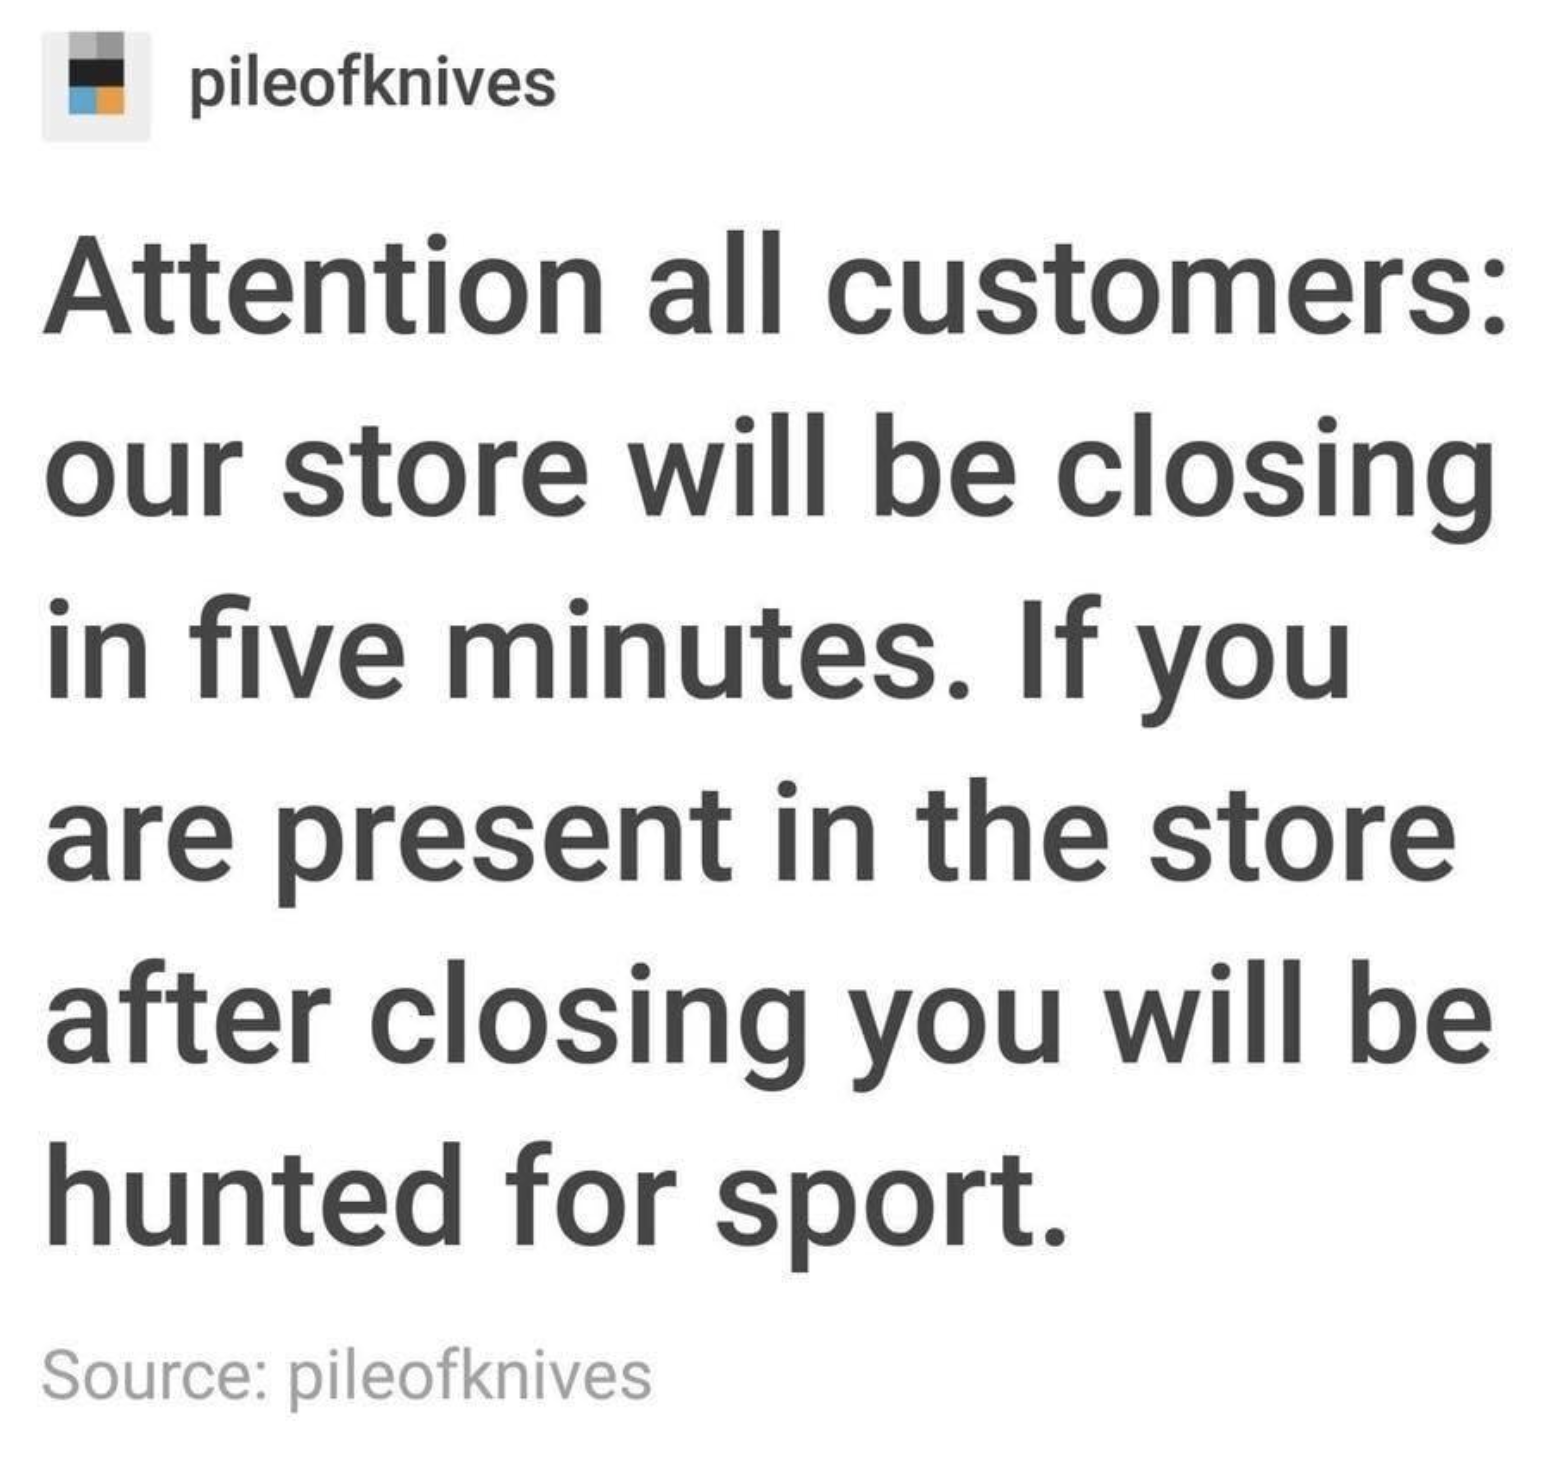 tumblr post reading attention all customers our store will be closing in five minutes if you are present in the store after closing you will be hunted for sport